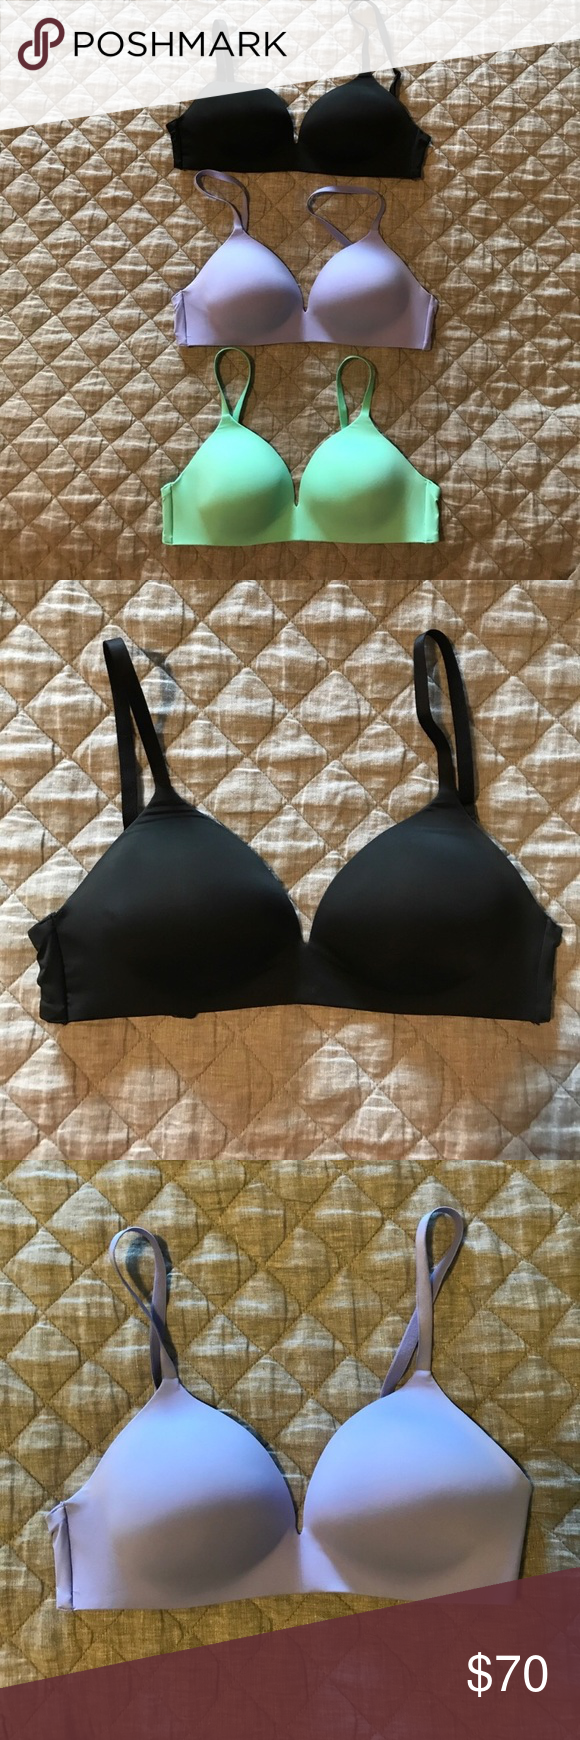 8b079cafc1 Gap Body Favorite Wireless Bras